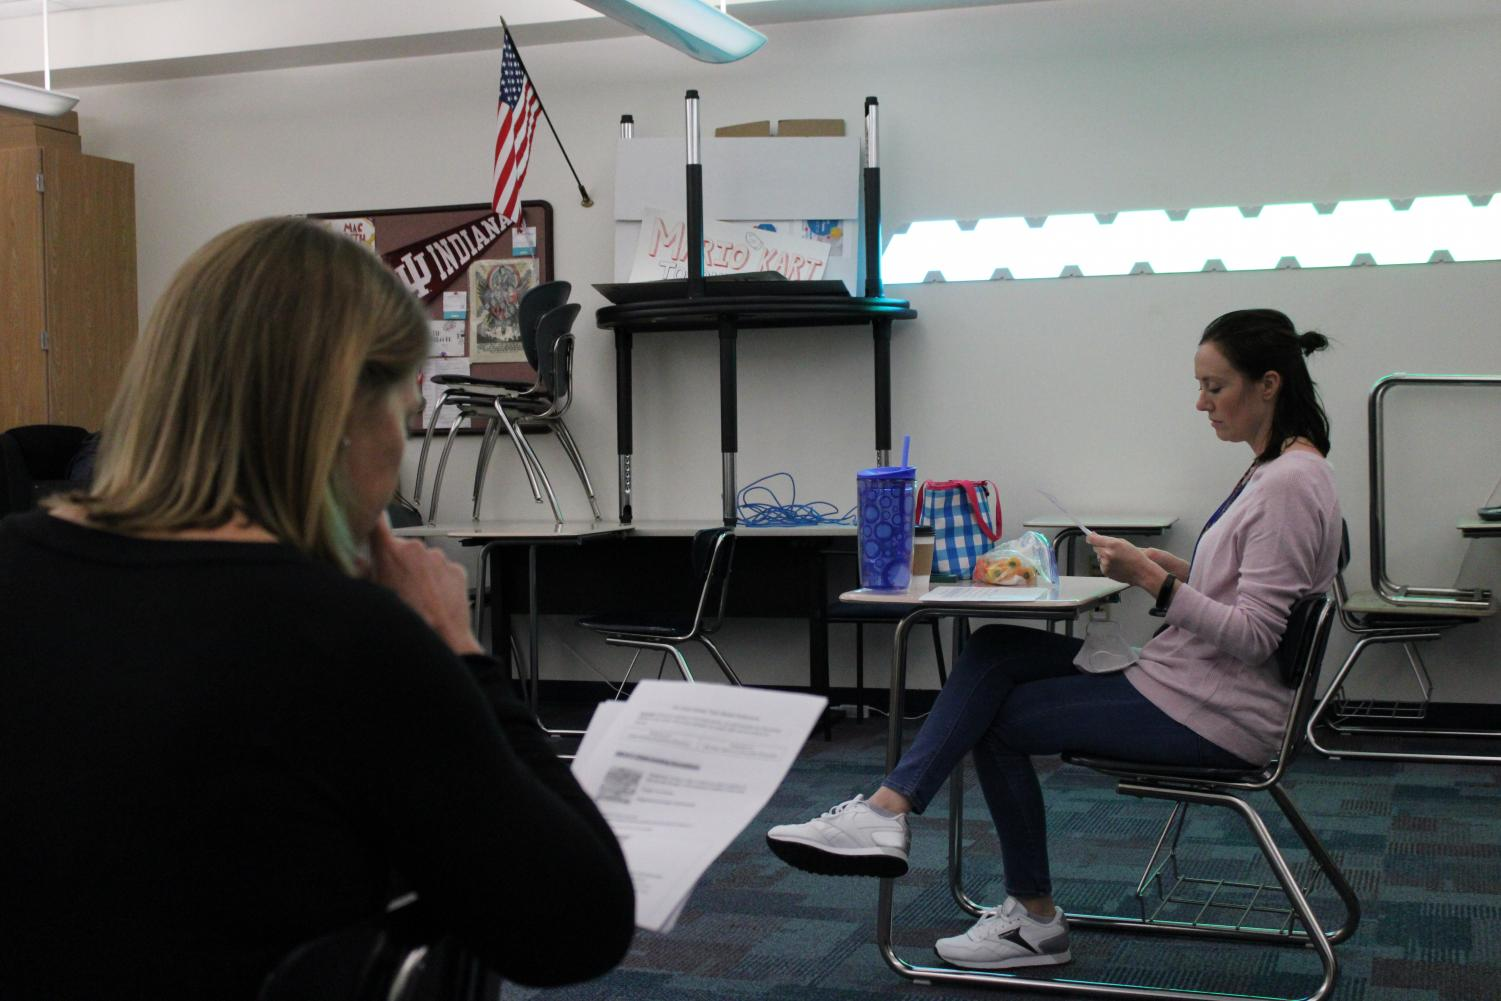 English 11 teachers Emily LeFors and Enid Baines meet over lunch to discuss changes to the curriculum for the 2021-2022 school year as well as adaptations for hybrid schedule. Baines led the meeting, speaking on how to teach The Great Gatsby with the limited schedule.